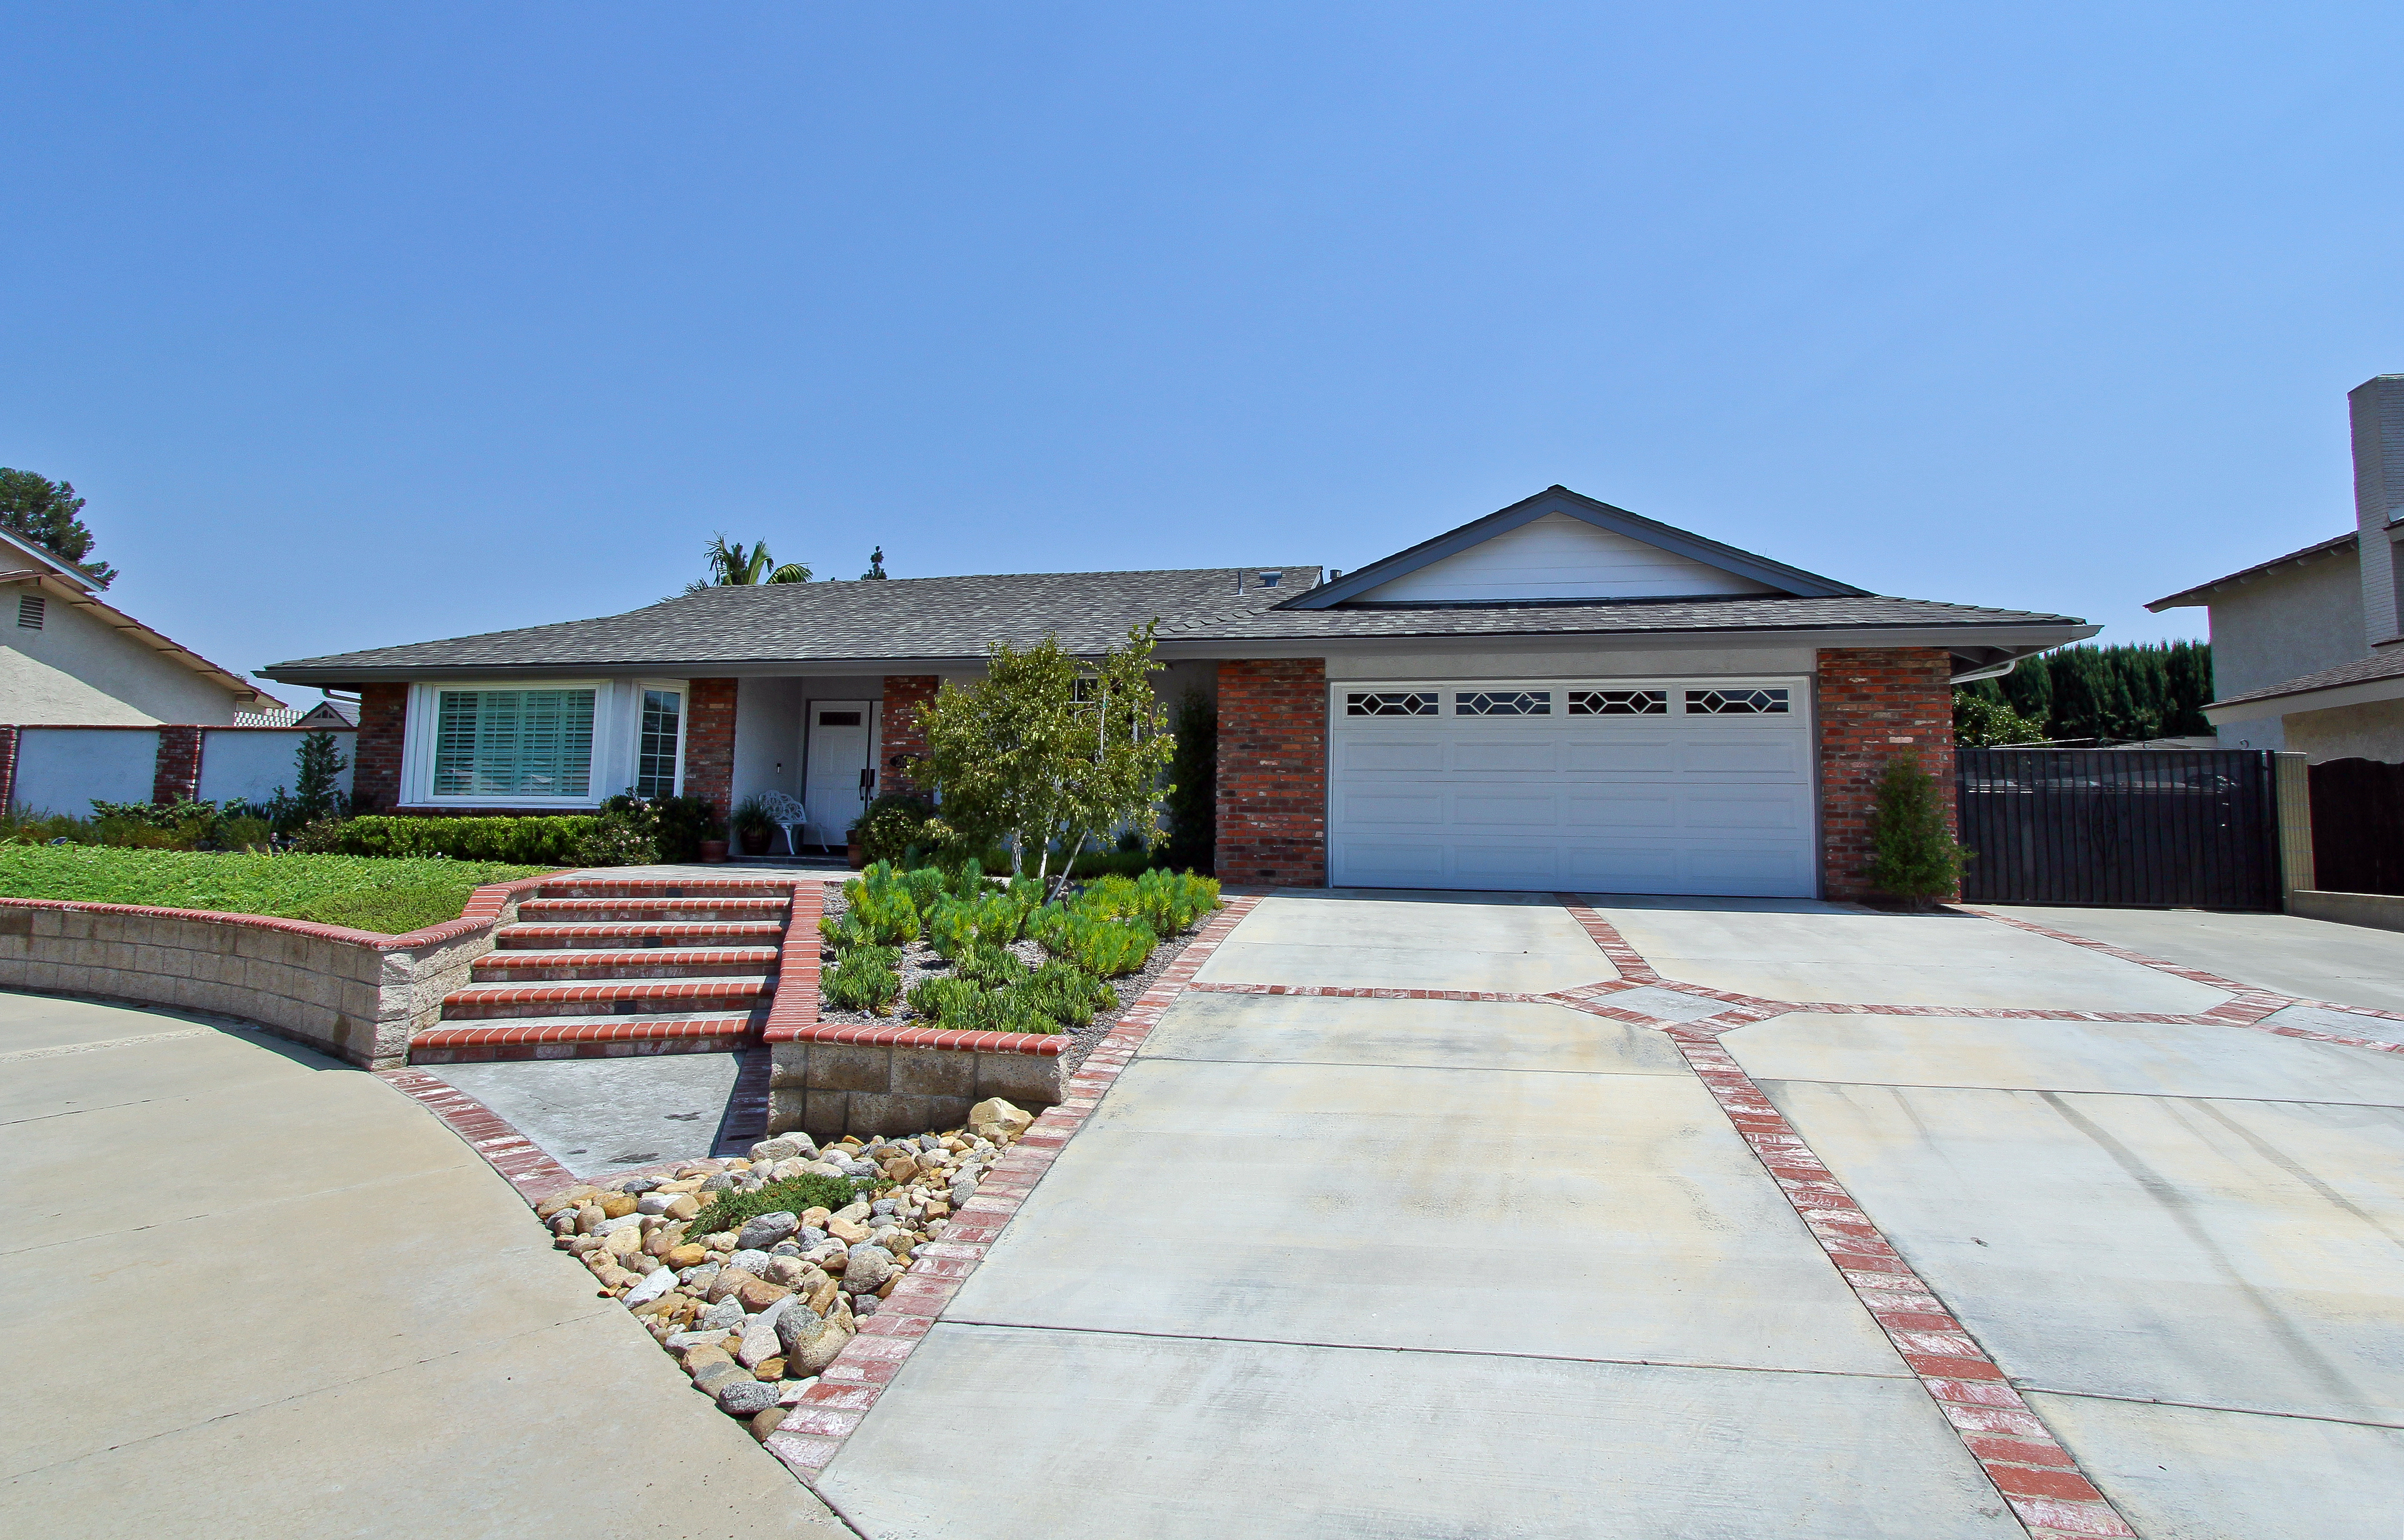 2632 Middlesex Place, Fullerton, CA